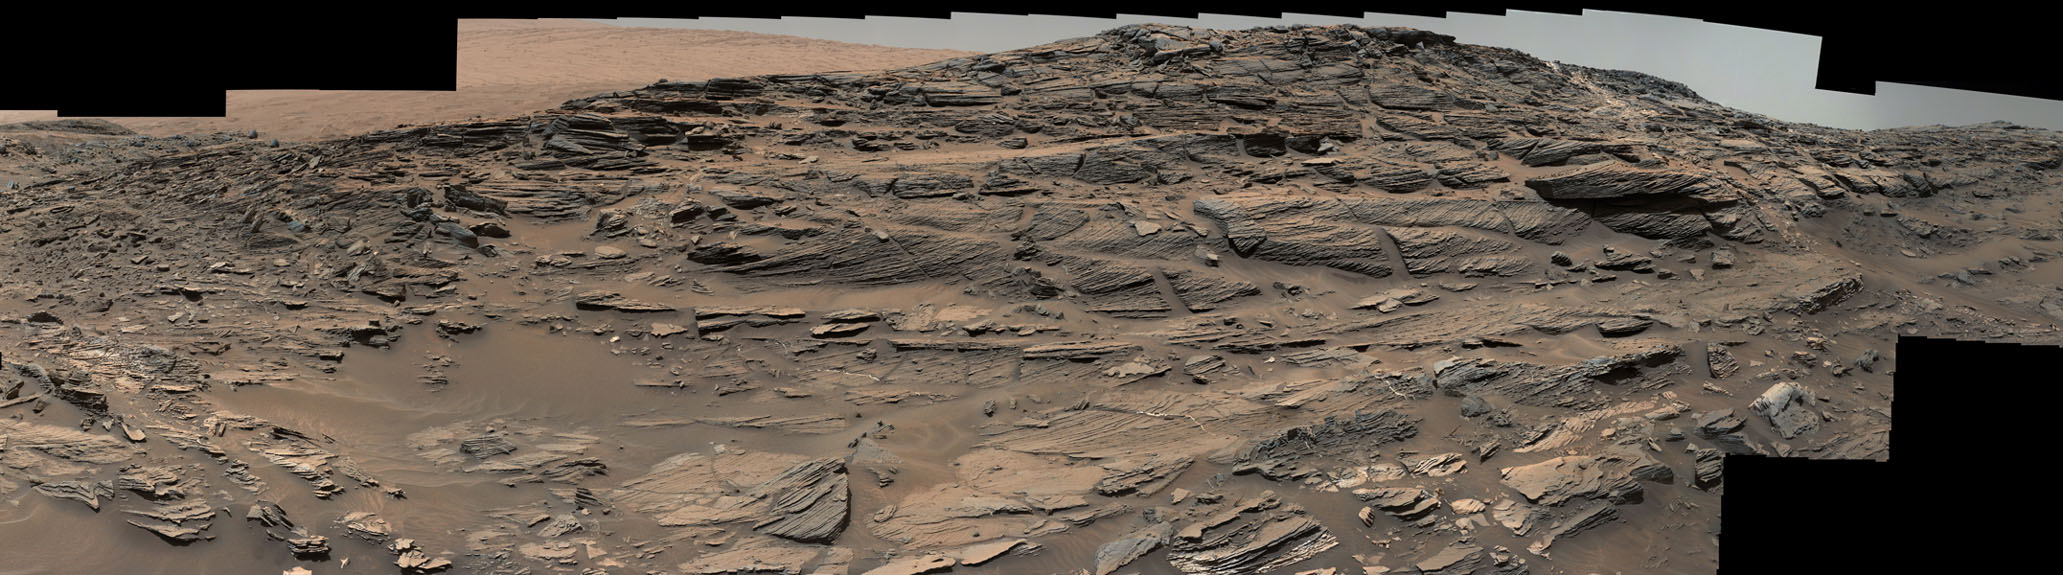 Large-scale crossbedding in the sandstone of this ridge on a lower slope of Mars' Mount Sharp is typical of windblown sand dunes that have petrified. NASA's Curiosity Mars rover used its Mastcam to capture this vista on Aug. 27, 2015.